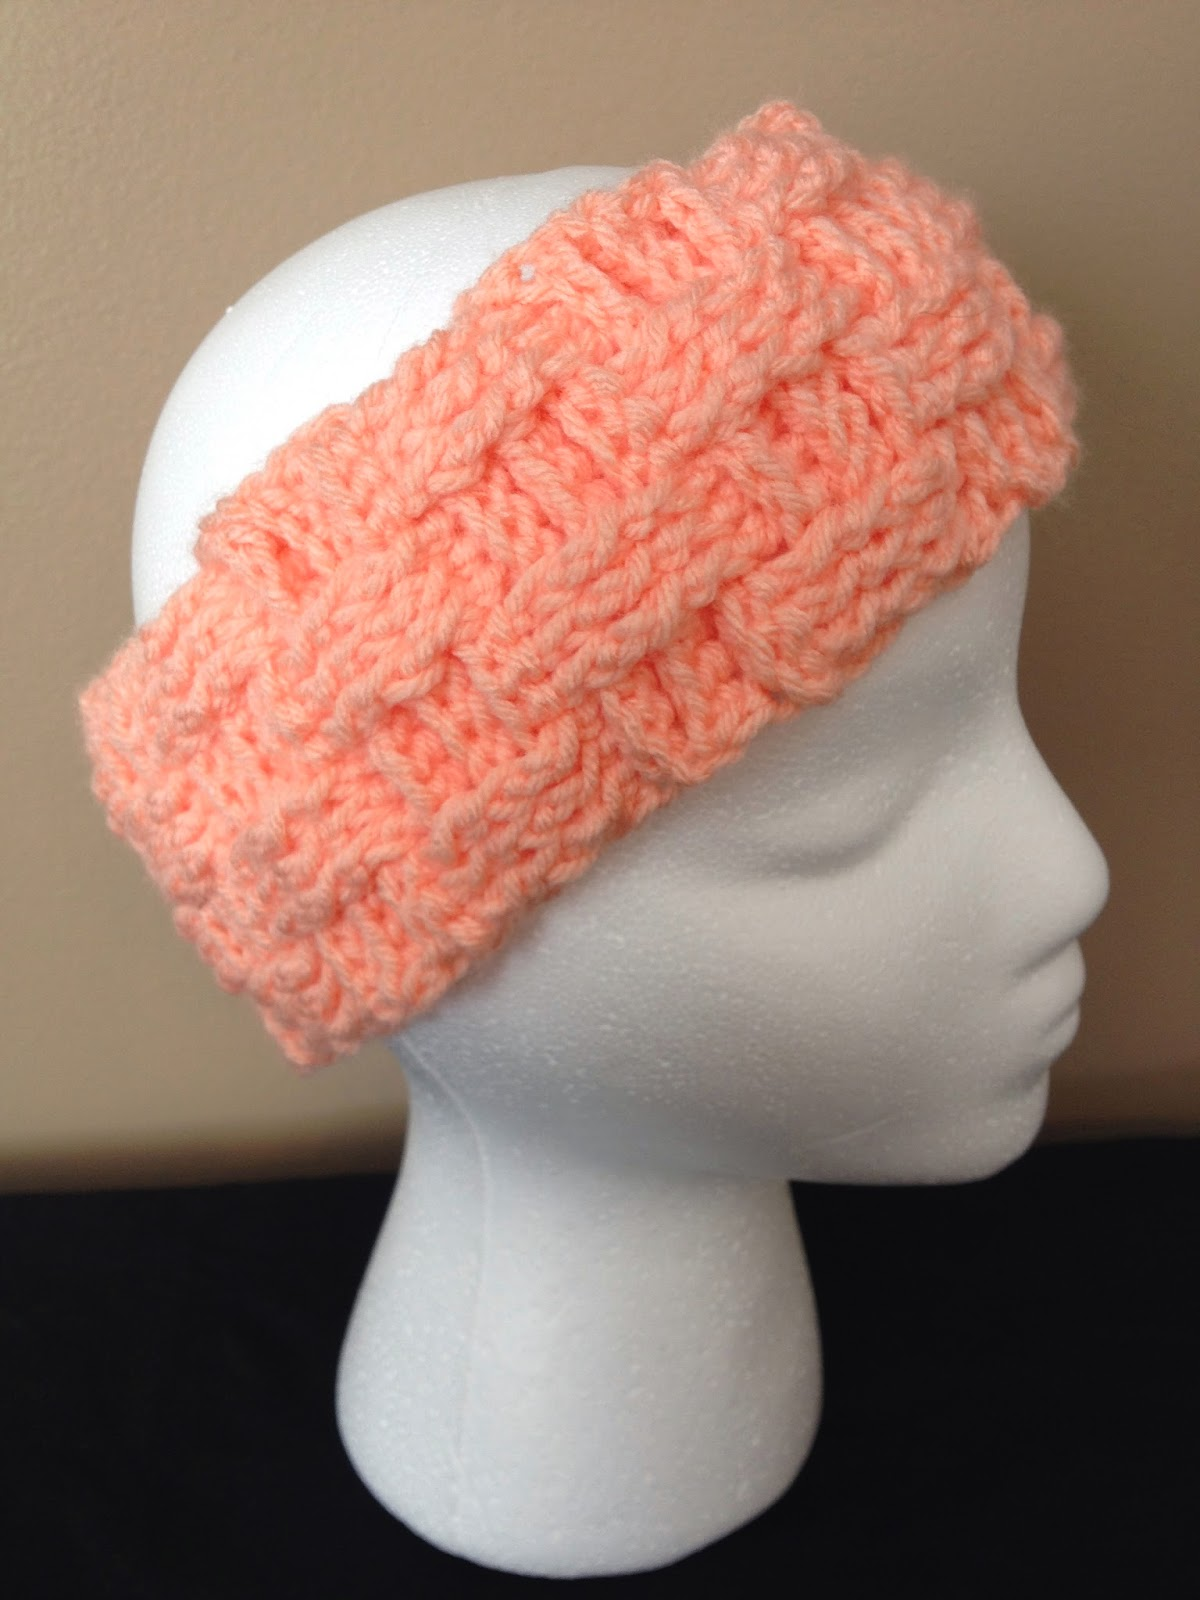 My Crocheted World: Basket Weave Ear Warmer Free Pattern!